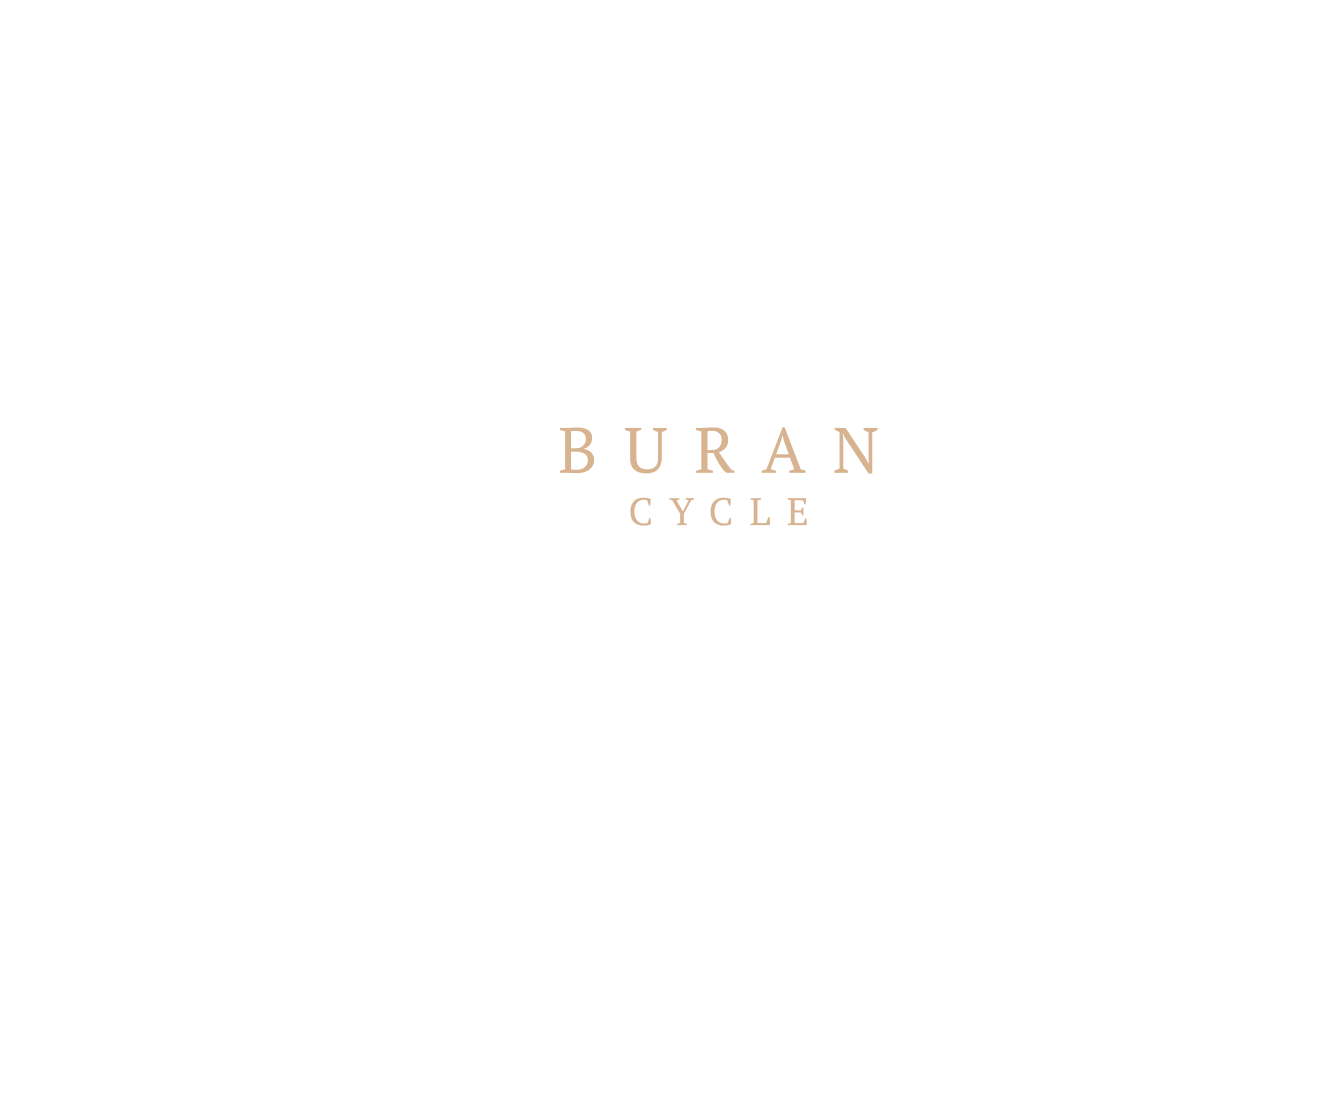 Cycle thermal Buran